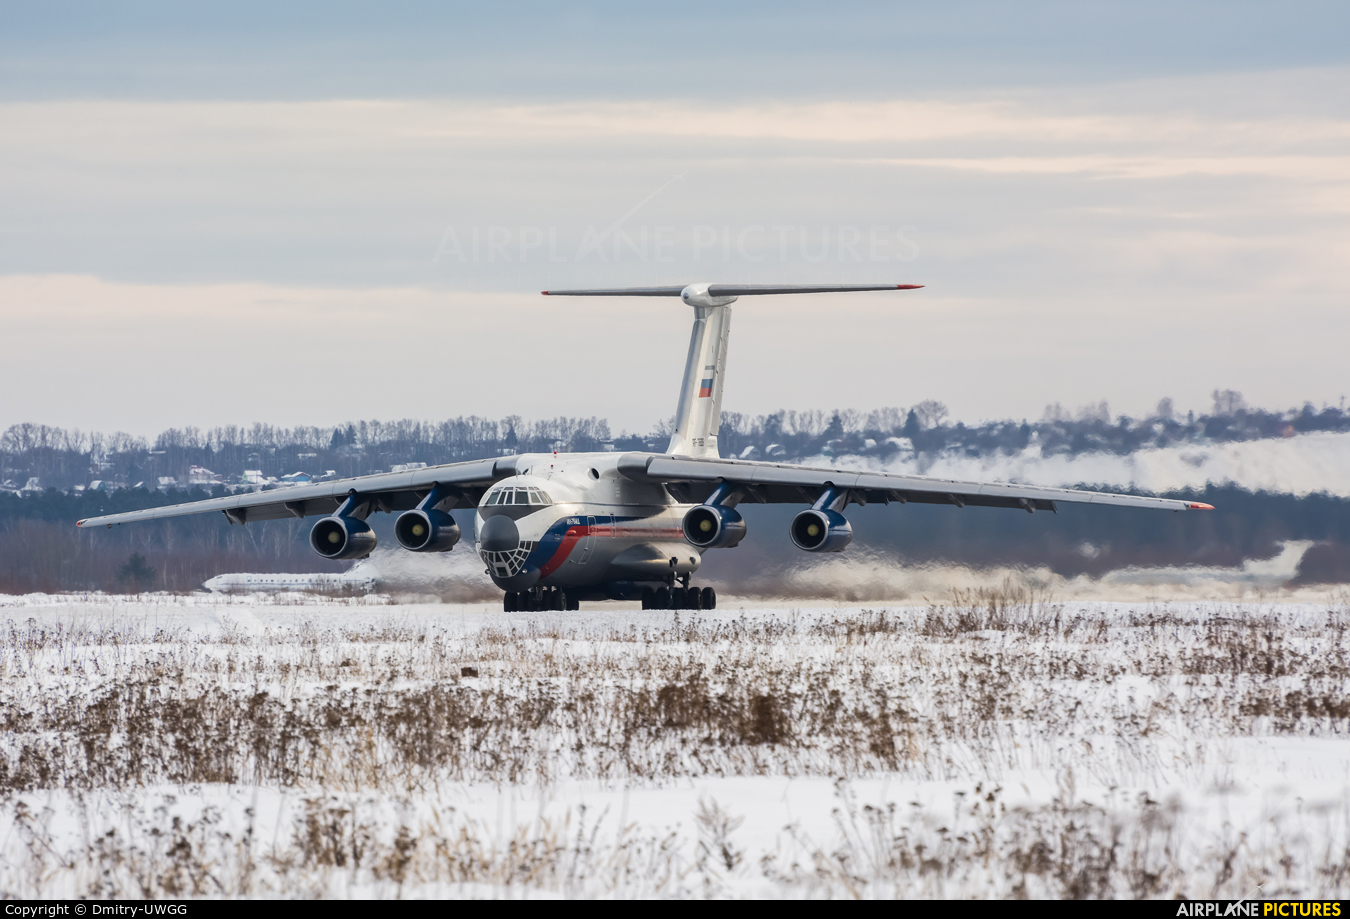 Russia - Ministry of Internal Affairs RF-76826 aircraft at Undisclosed location